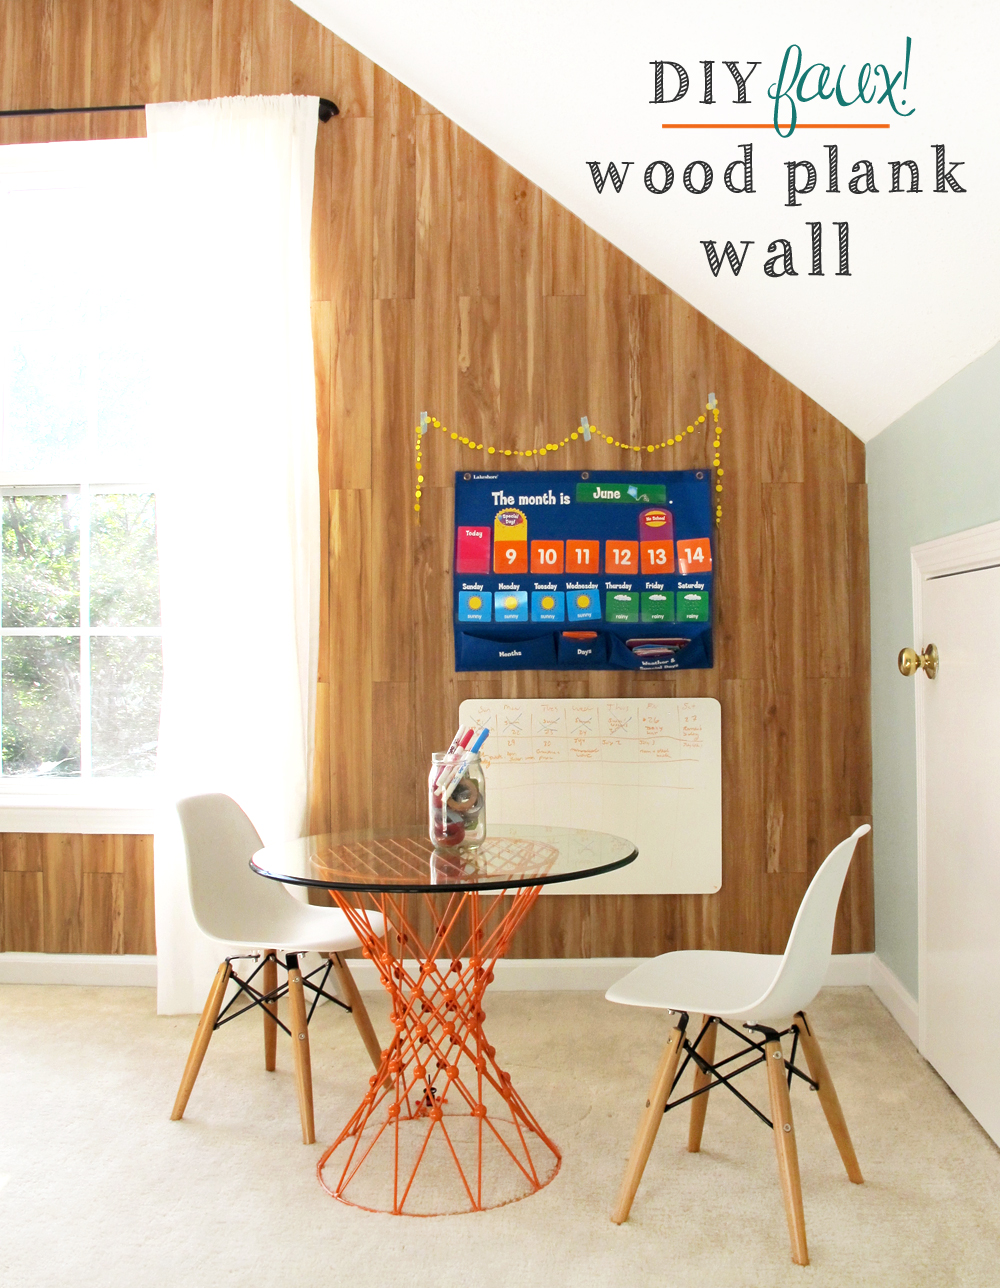 learn how to make a faux wood plank wall for under $100!